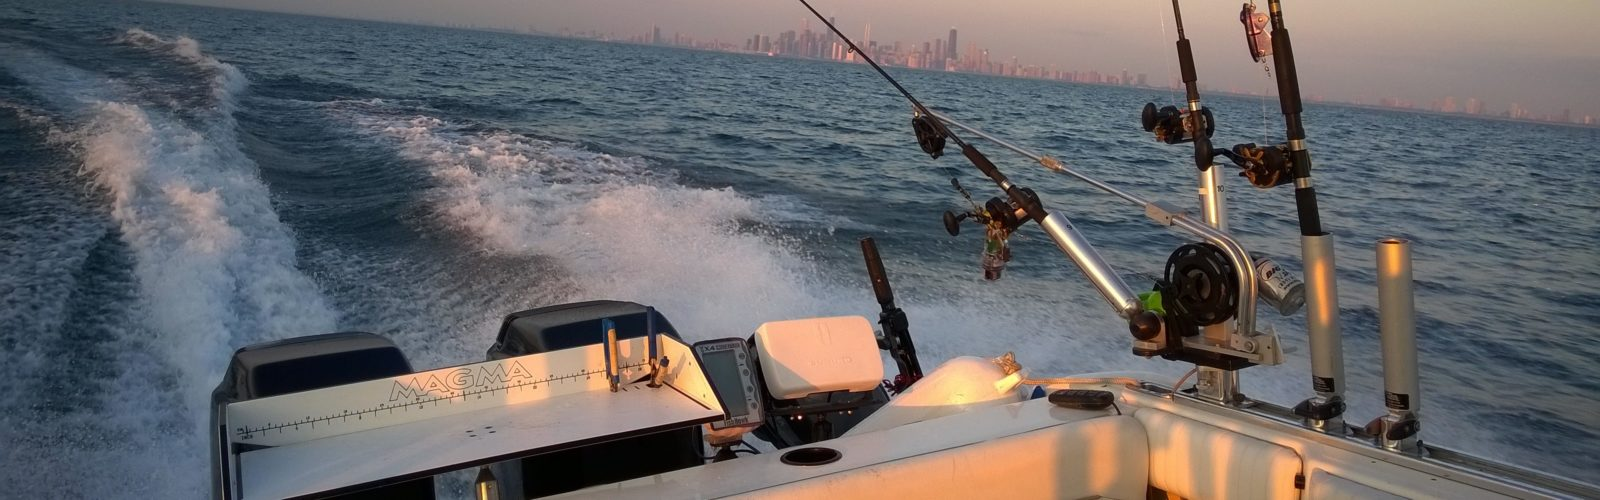 Storm warning fishing charters of chicago for Chicago fishing charters